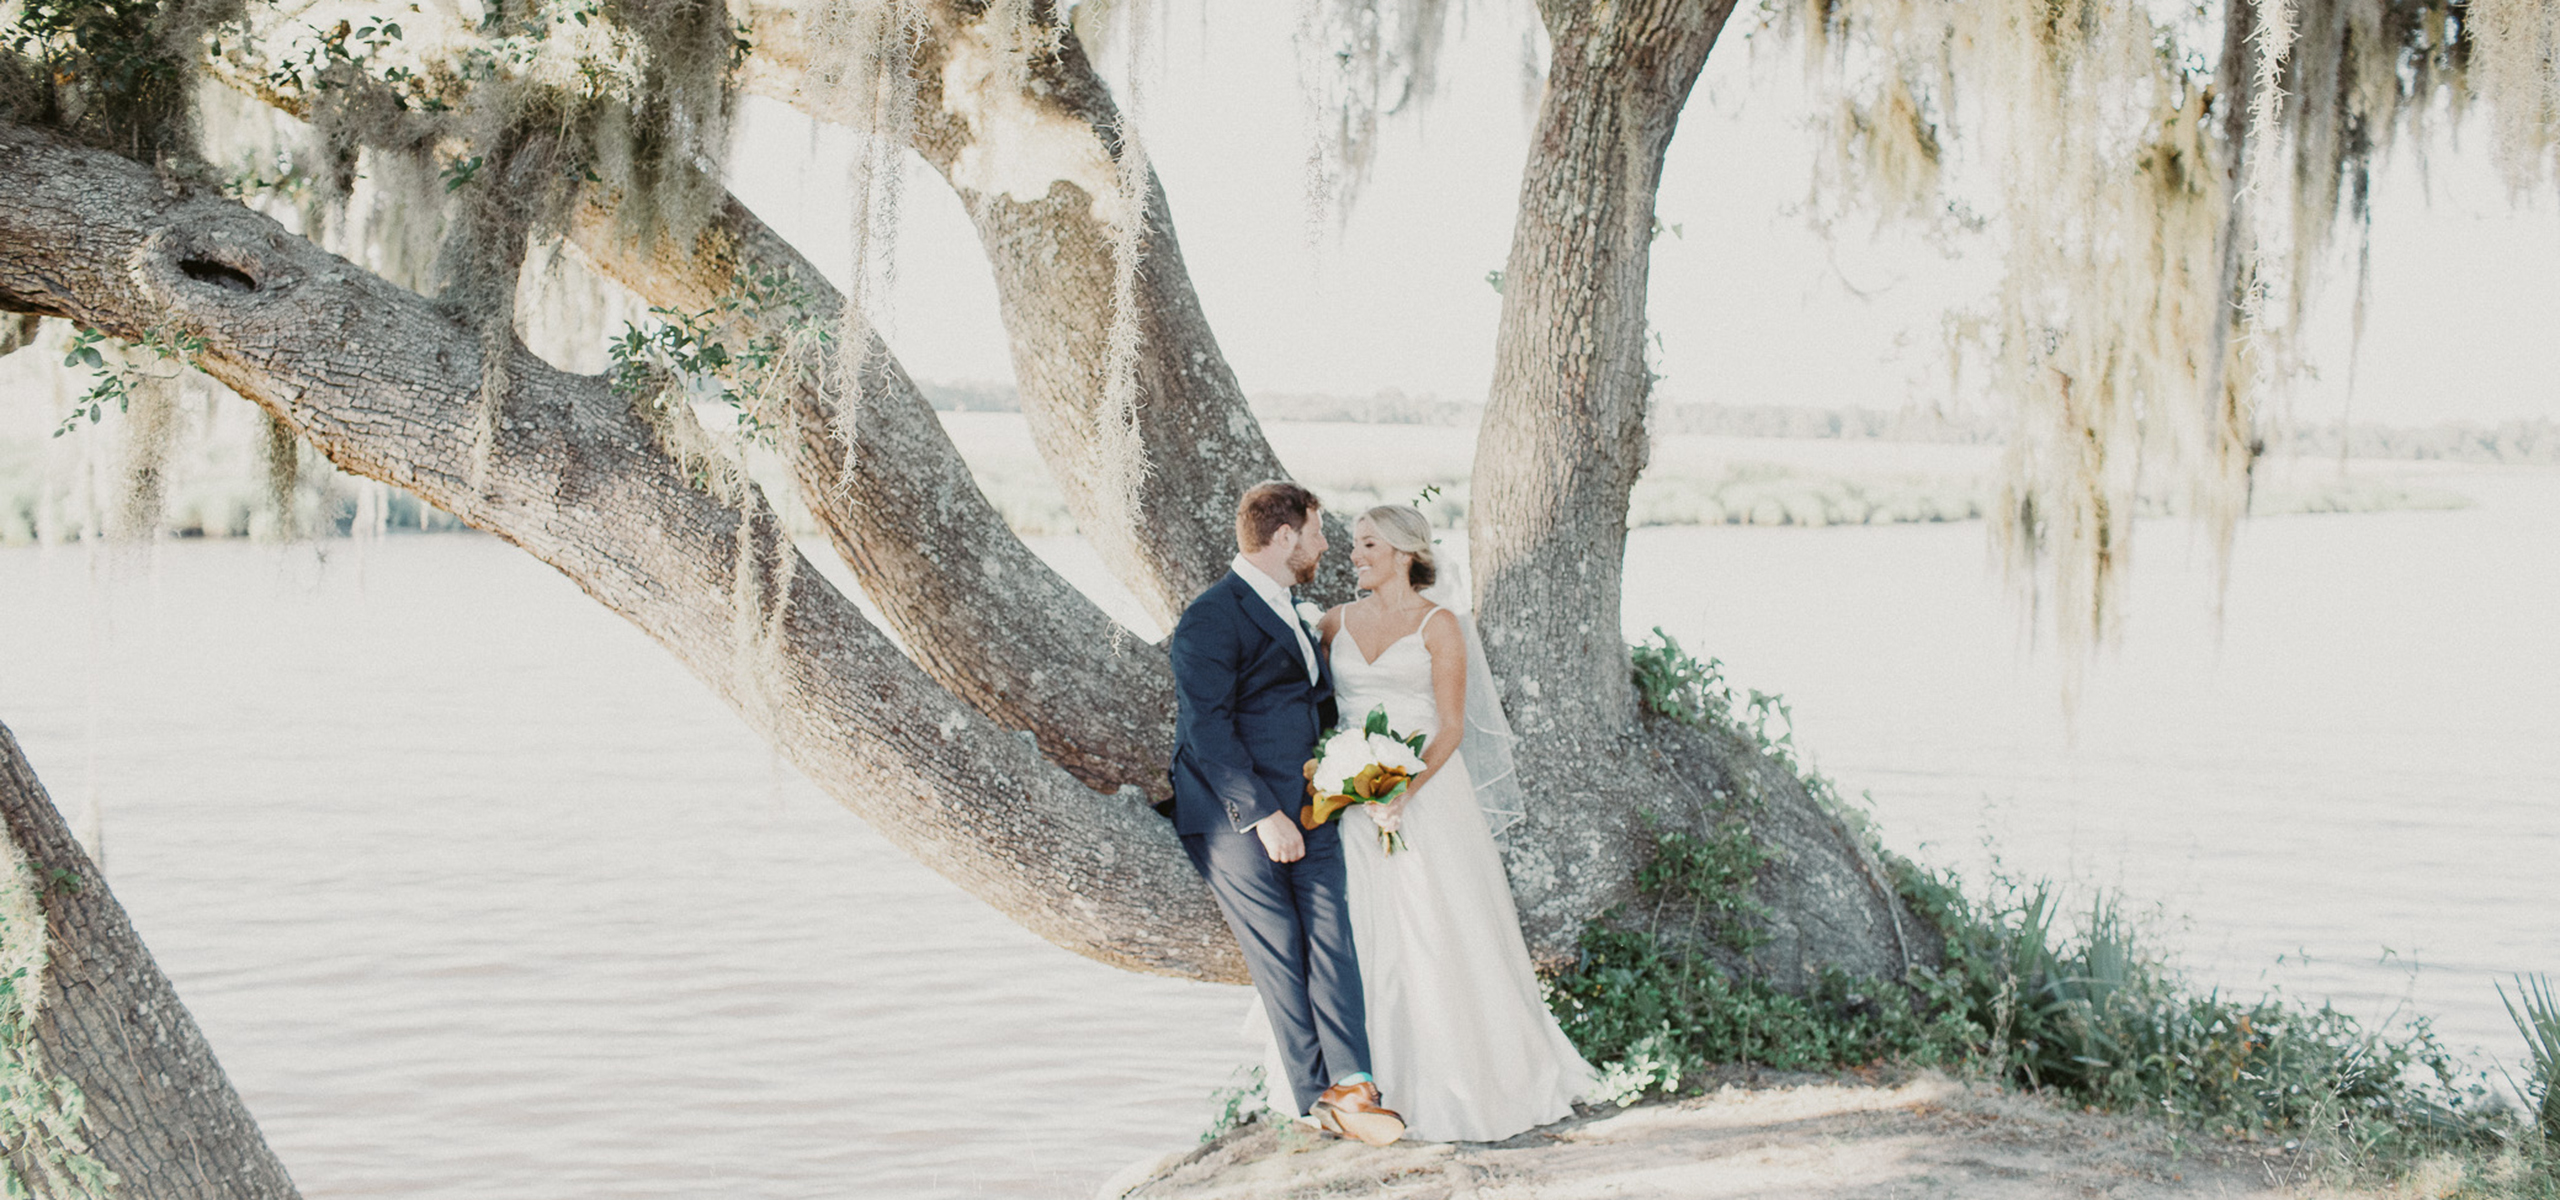 New Orleans Louisiana Wedding Photography + Elopement Photography